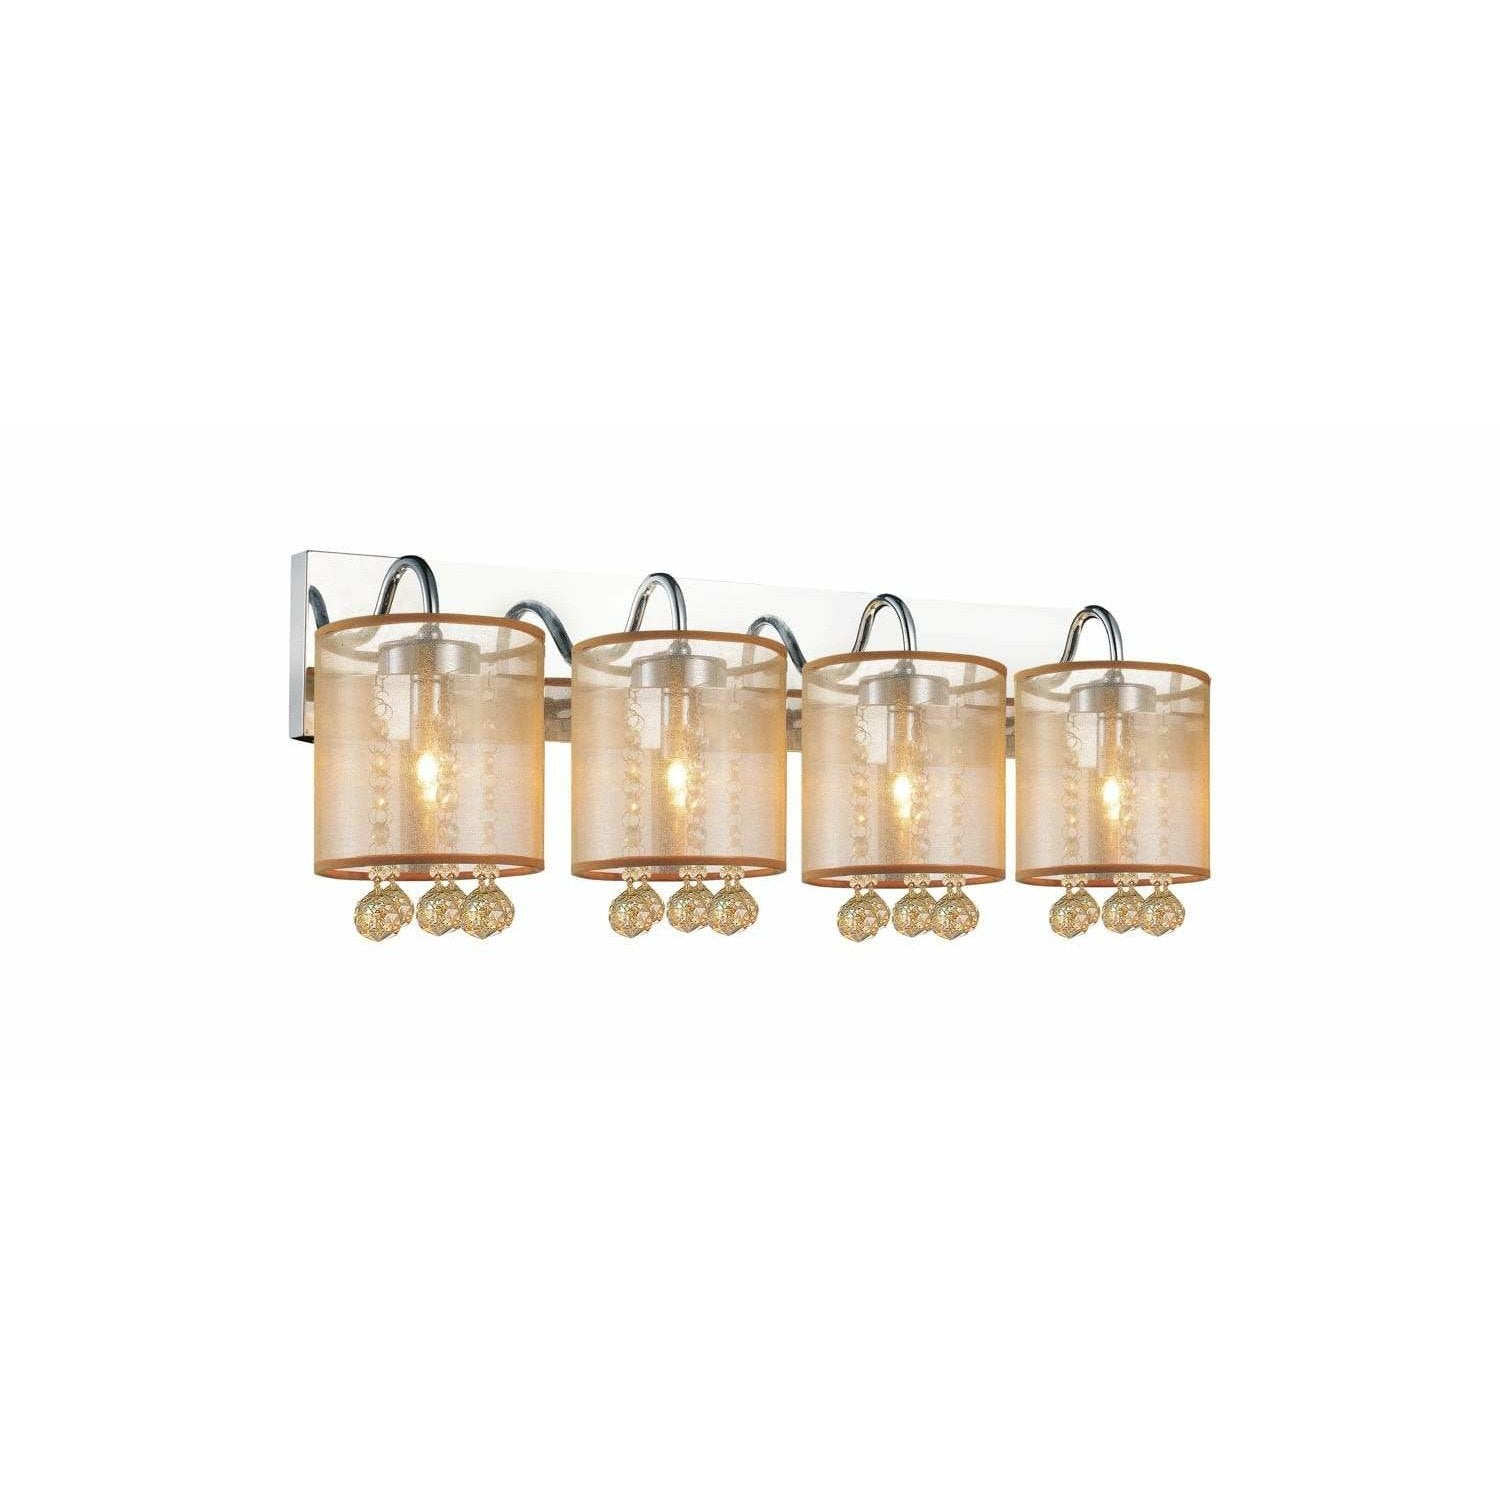 CWI Lighting Wall Sconces Chrome / K9 Champagne Radiant 4 Light Wall Sconce with Chrome Finish by CWI Lighting 5062W24C-4 (Chp + G)